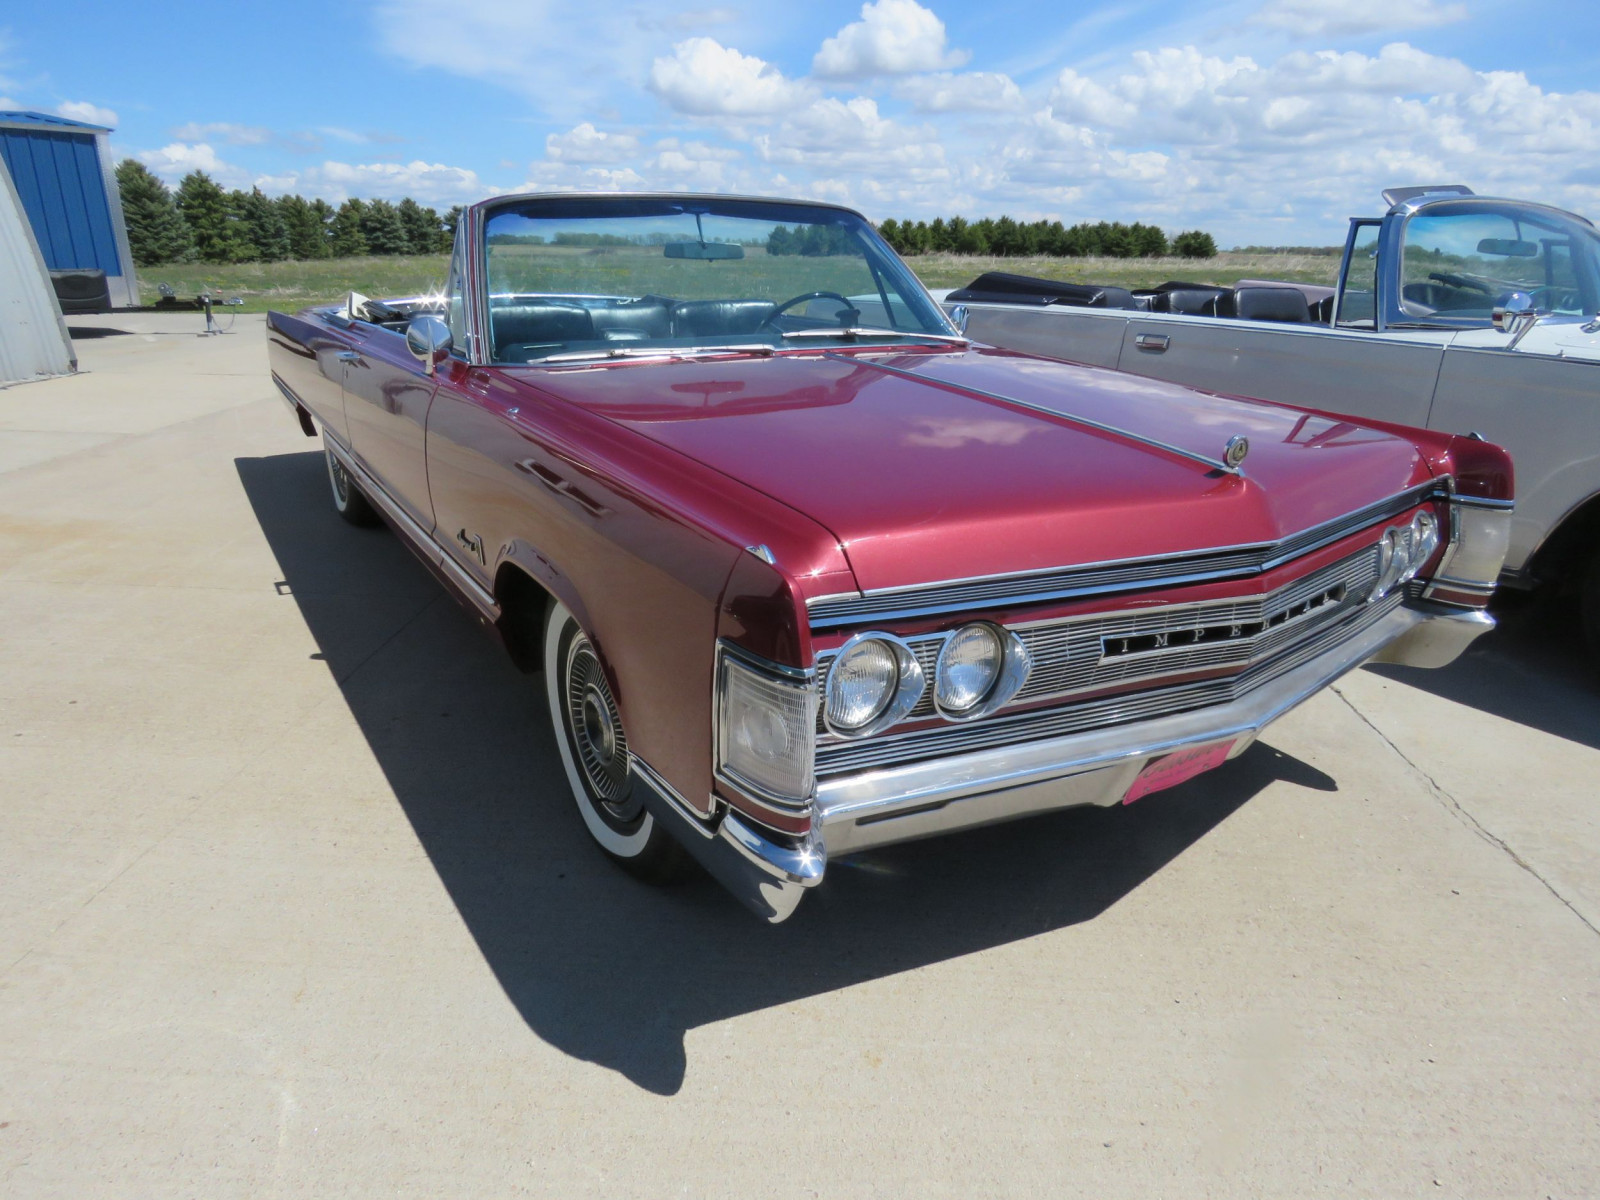 1967 Chrysler Imperial Convertible - Image 3